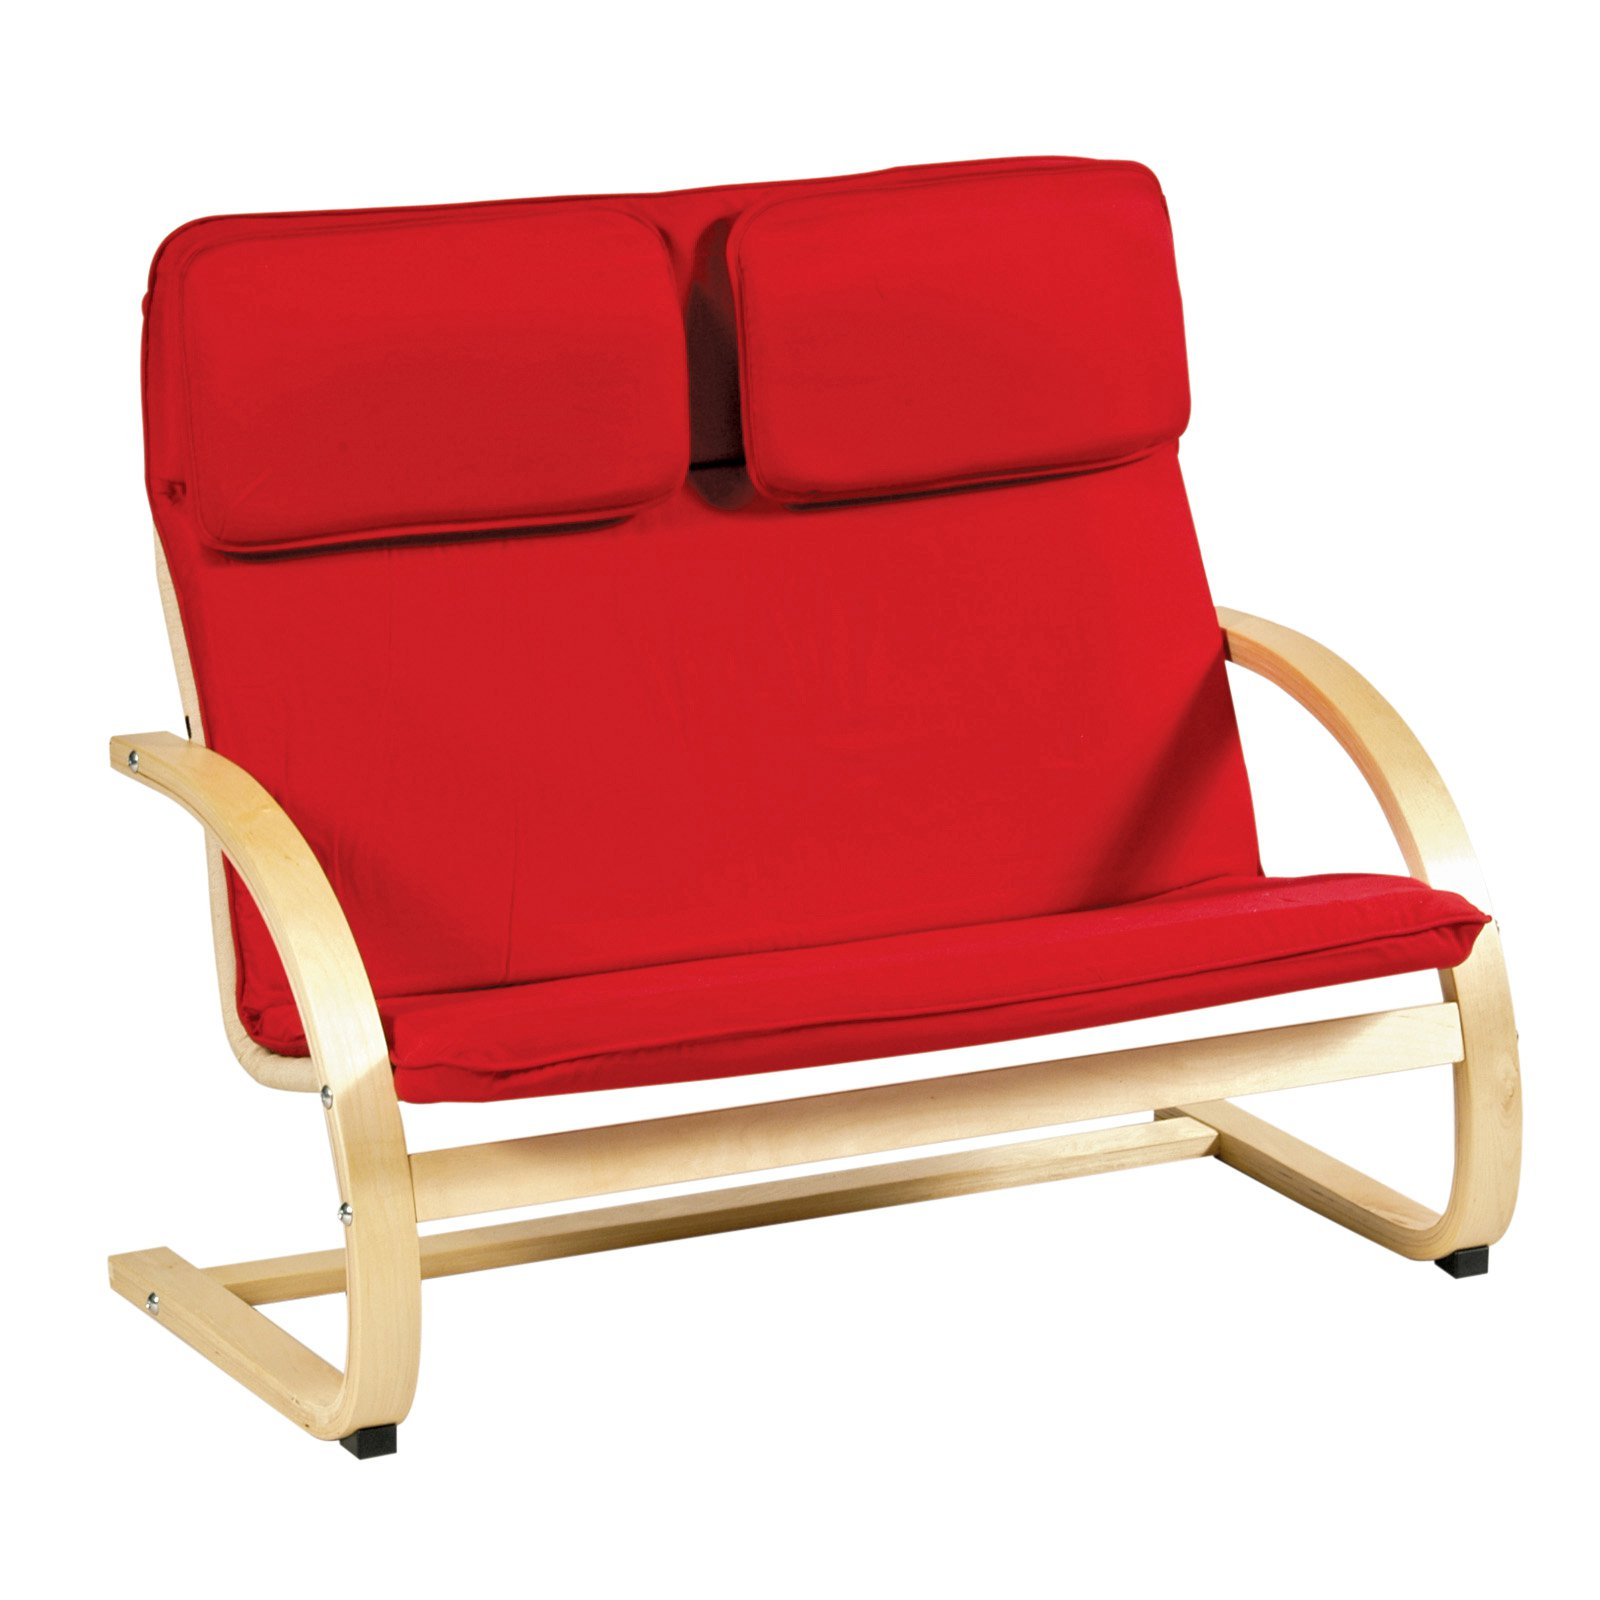 Guidecraft Kiddie Red Couch